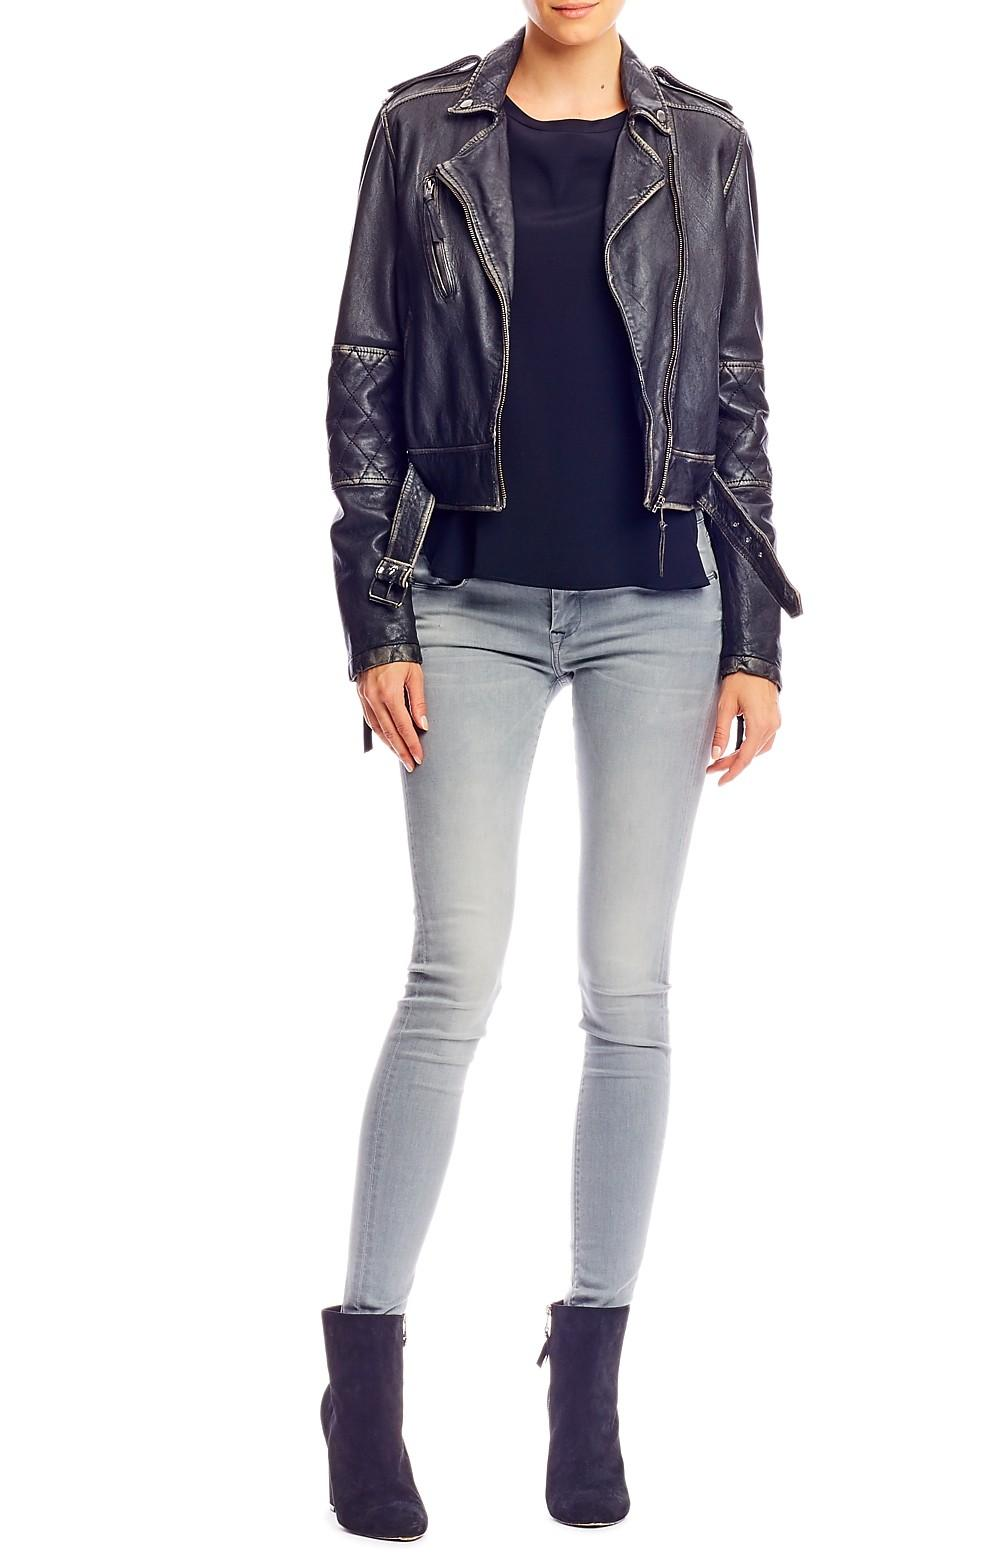 Nicole Miller Distressed Leather Jacket In Black Lyst